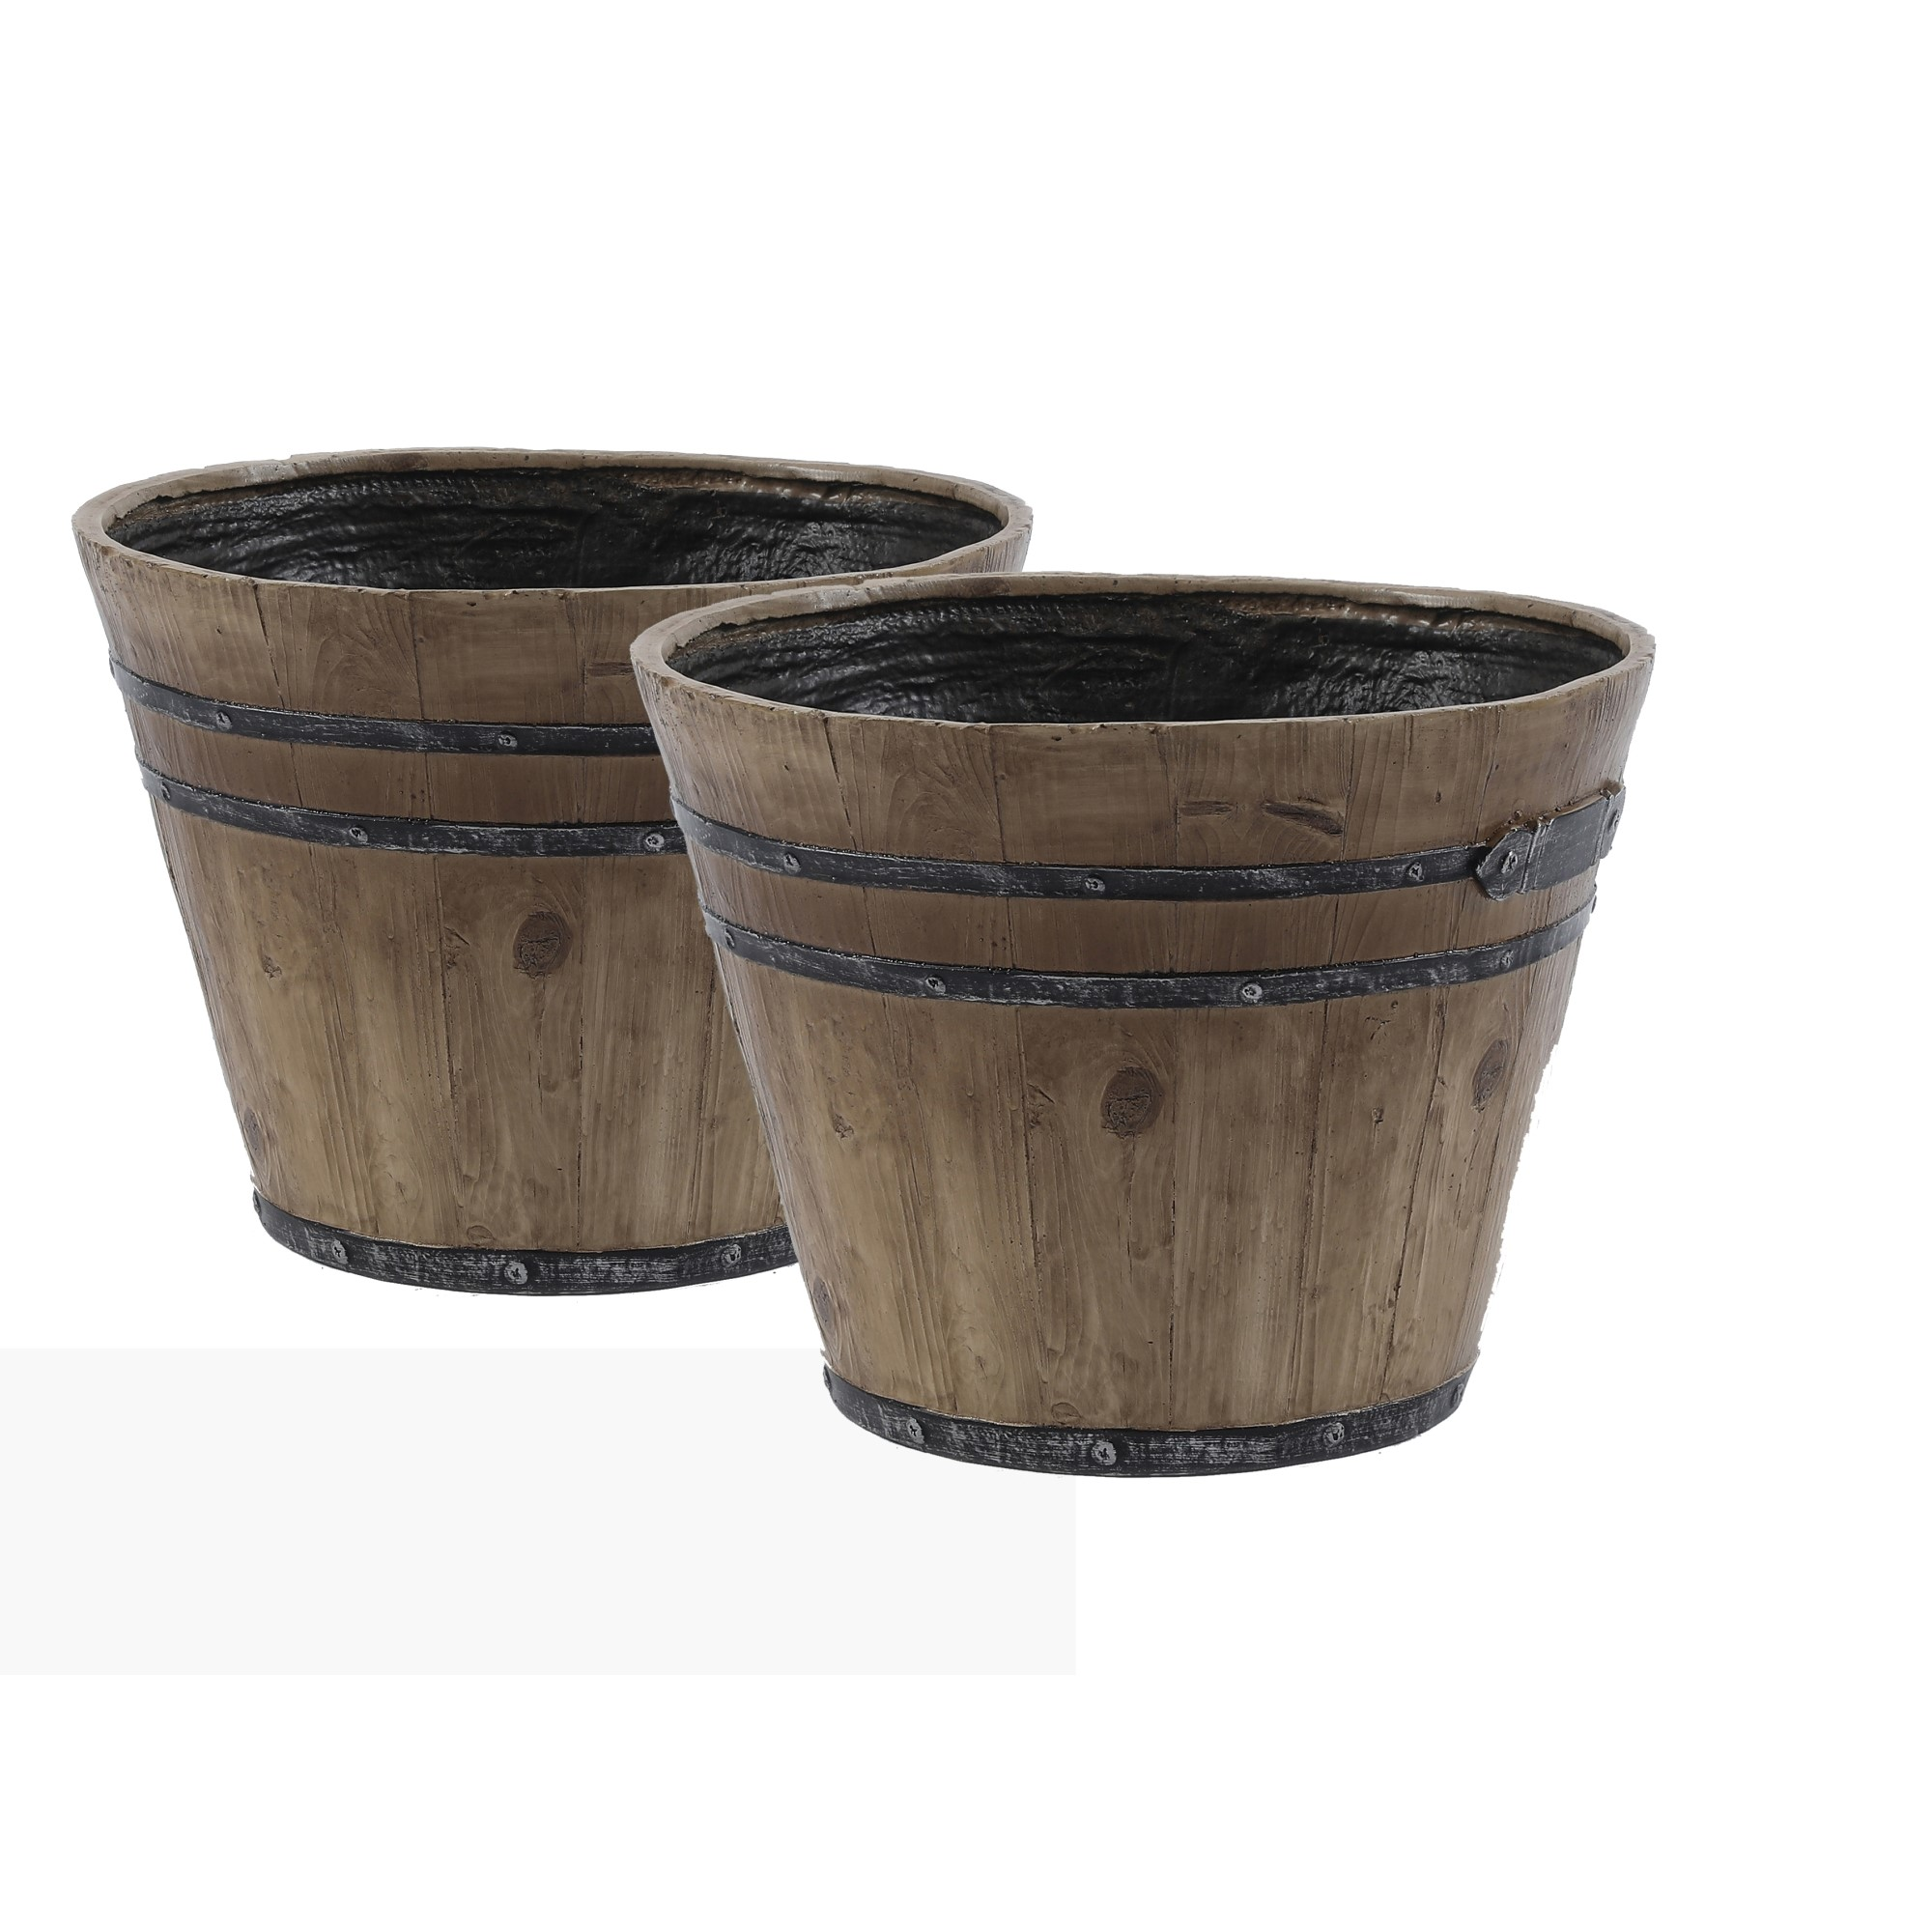 Luxen Home WH028 Barrel Planter with Rustic - Set of 2